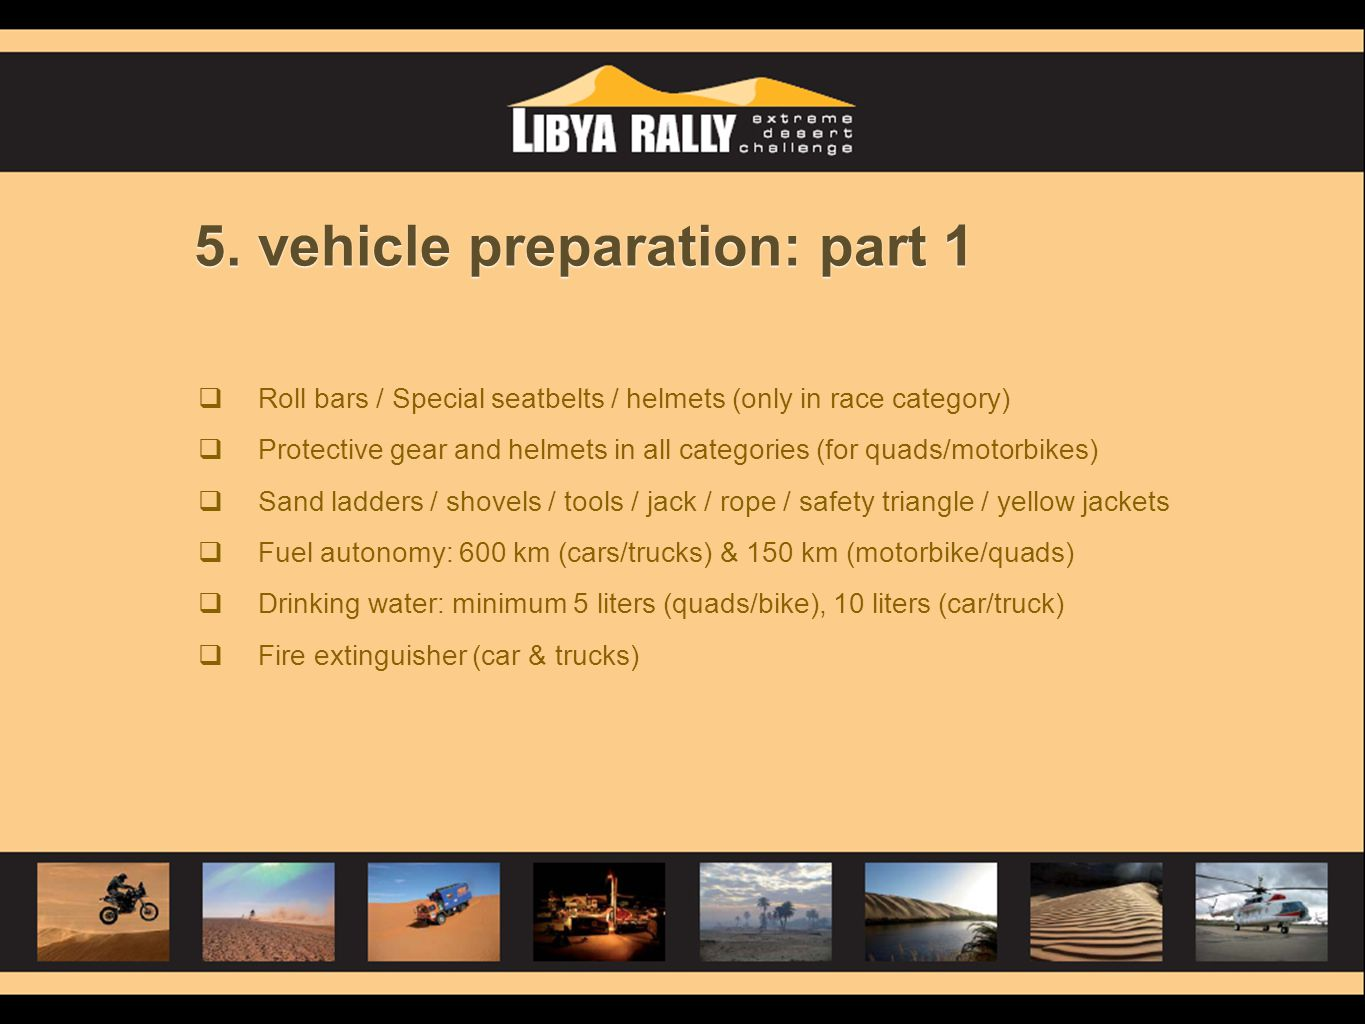 5. vehicle preparation: part 1